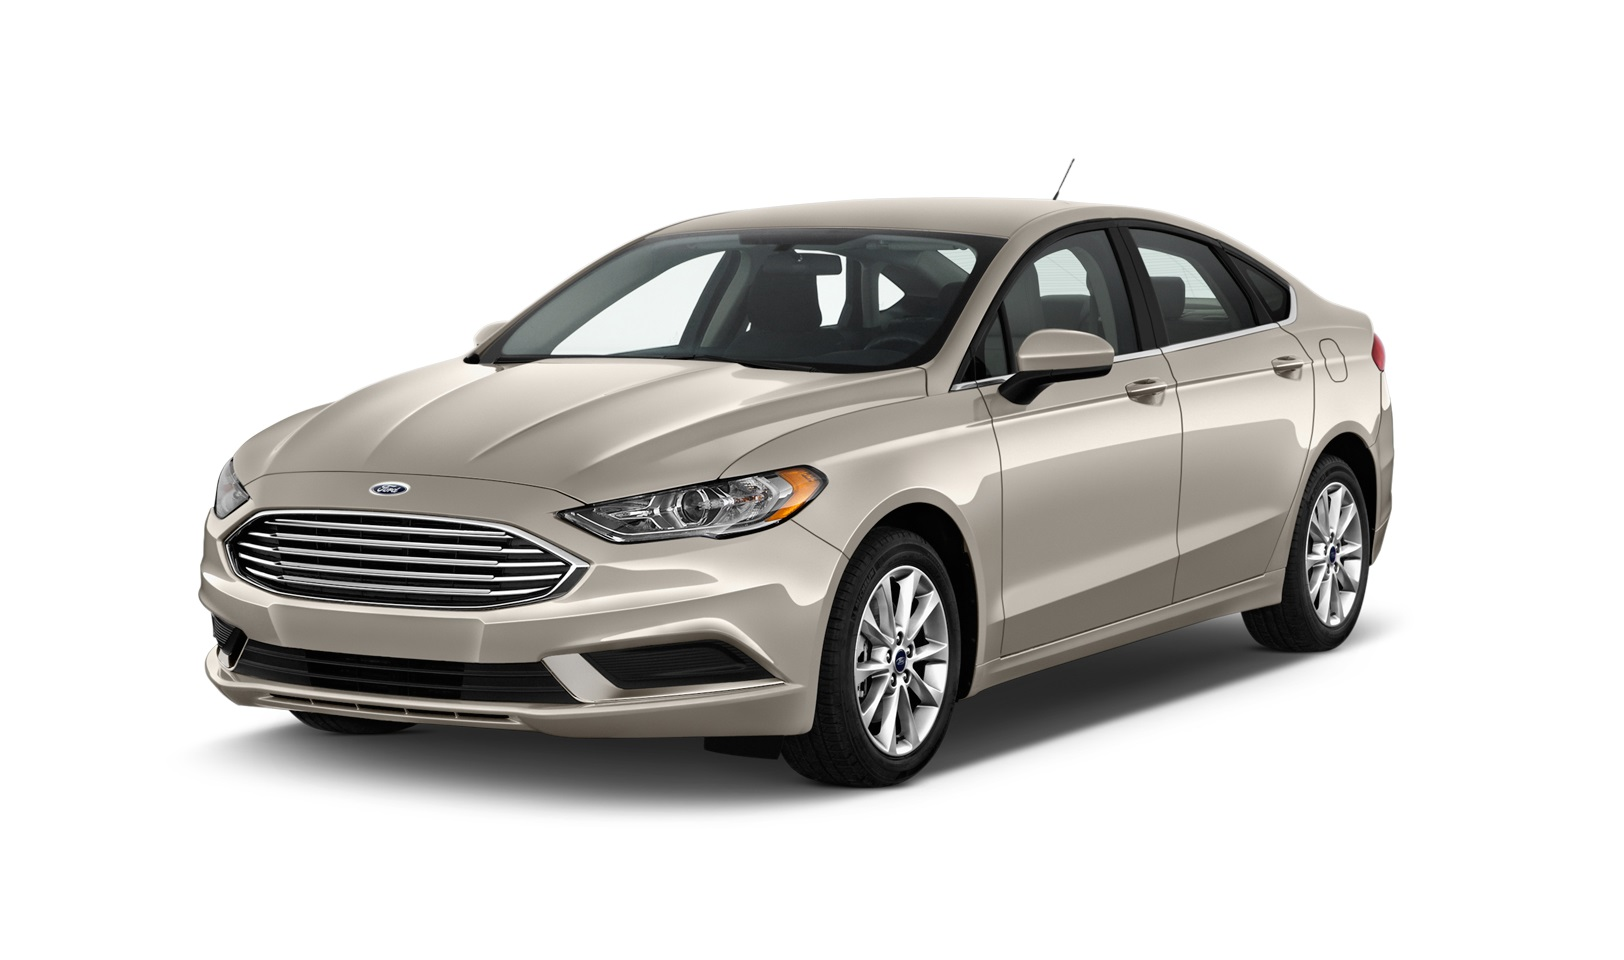 ford fusion 2017 2 5l s in uae  new car prices  specs  reviews  u0026 photos